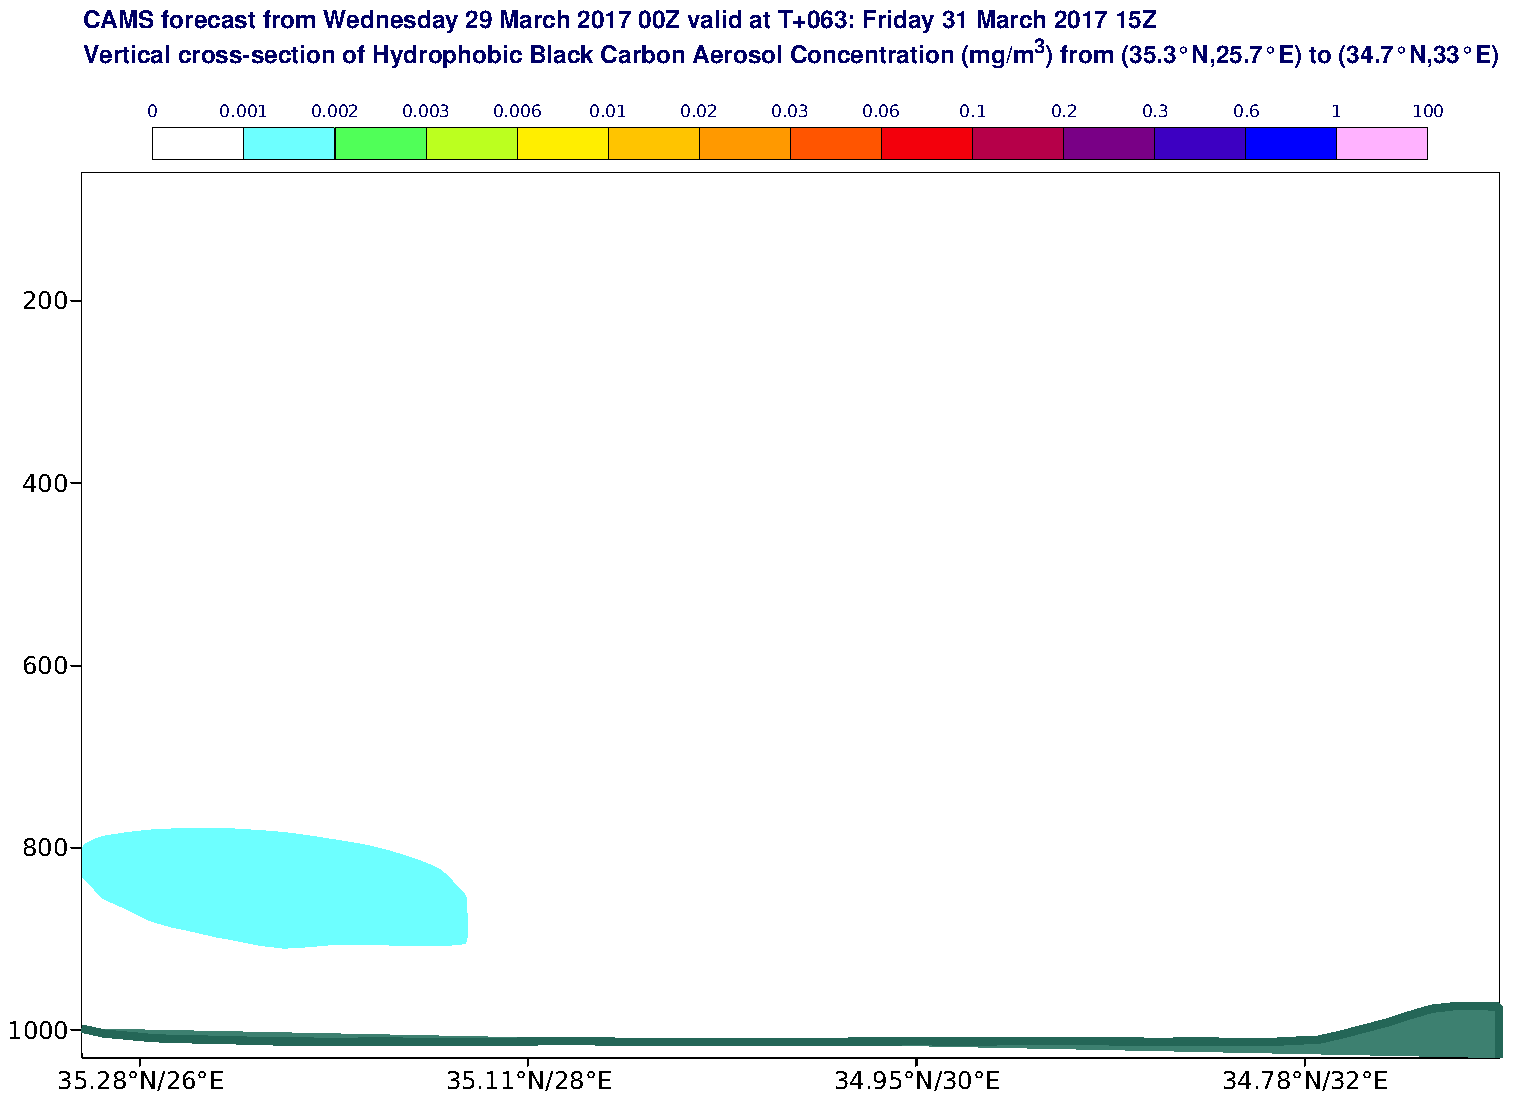 Vertical cross-section of Hydrophobic Black Carbon Aerosol Concentration (mg/m3) valid at T63 - 2017-03-31 15:00